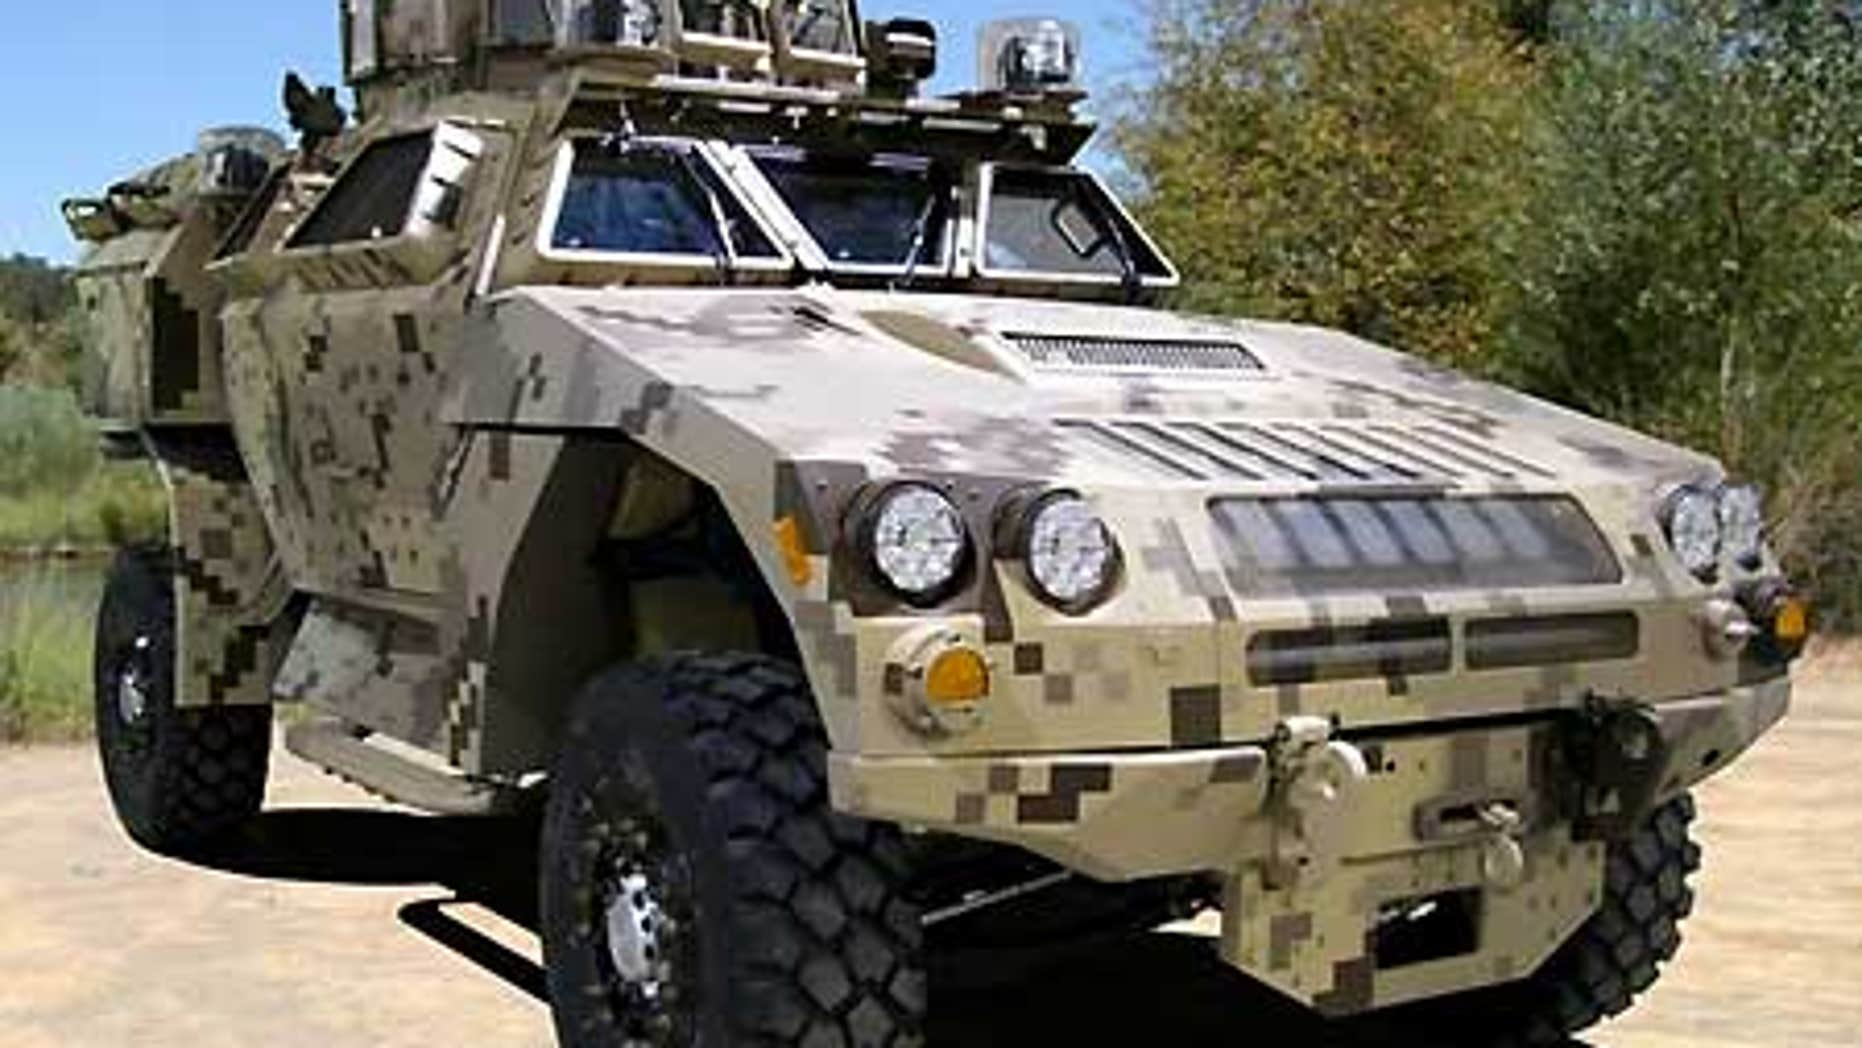 The MRAP All Terrain Vehicle is designed to handle Afghanistan's rough terrain and protect against IED's.